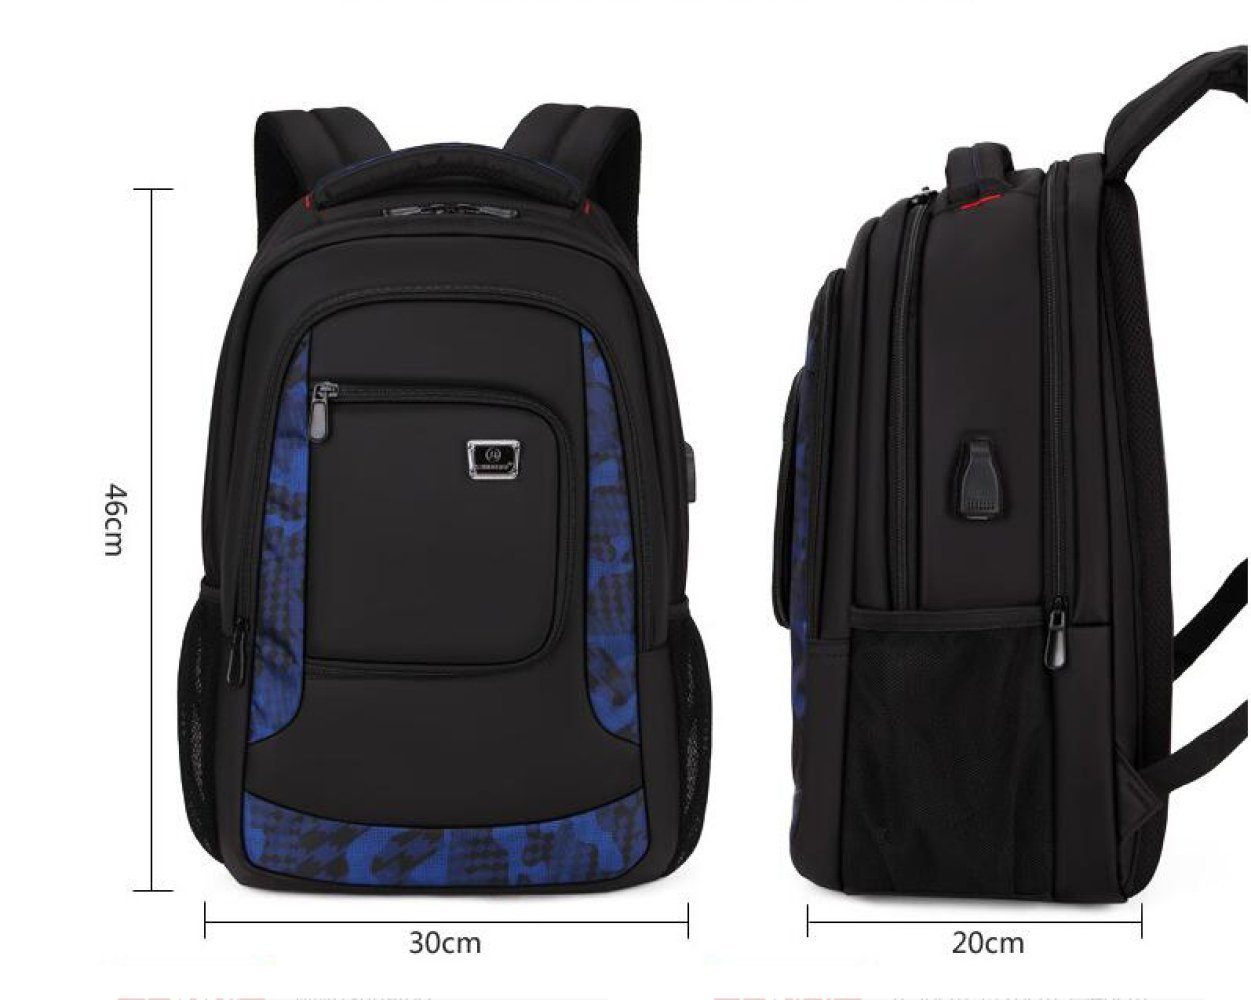 53641c4204c5 Amazon.com: XIAOXUE Laptop Rucksack Daypack Casual Backpack ...